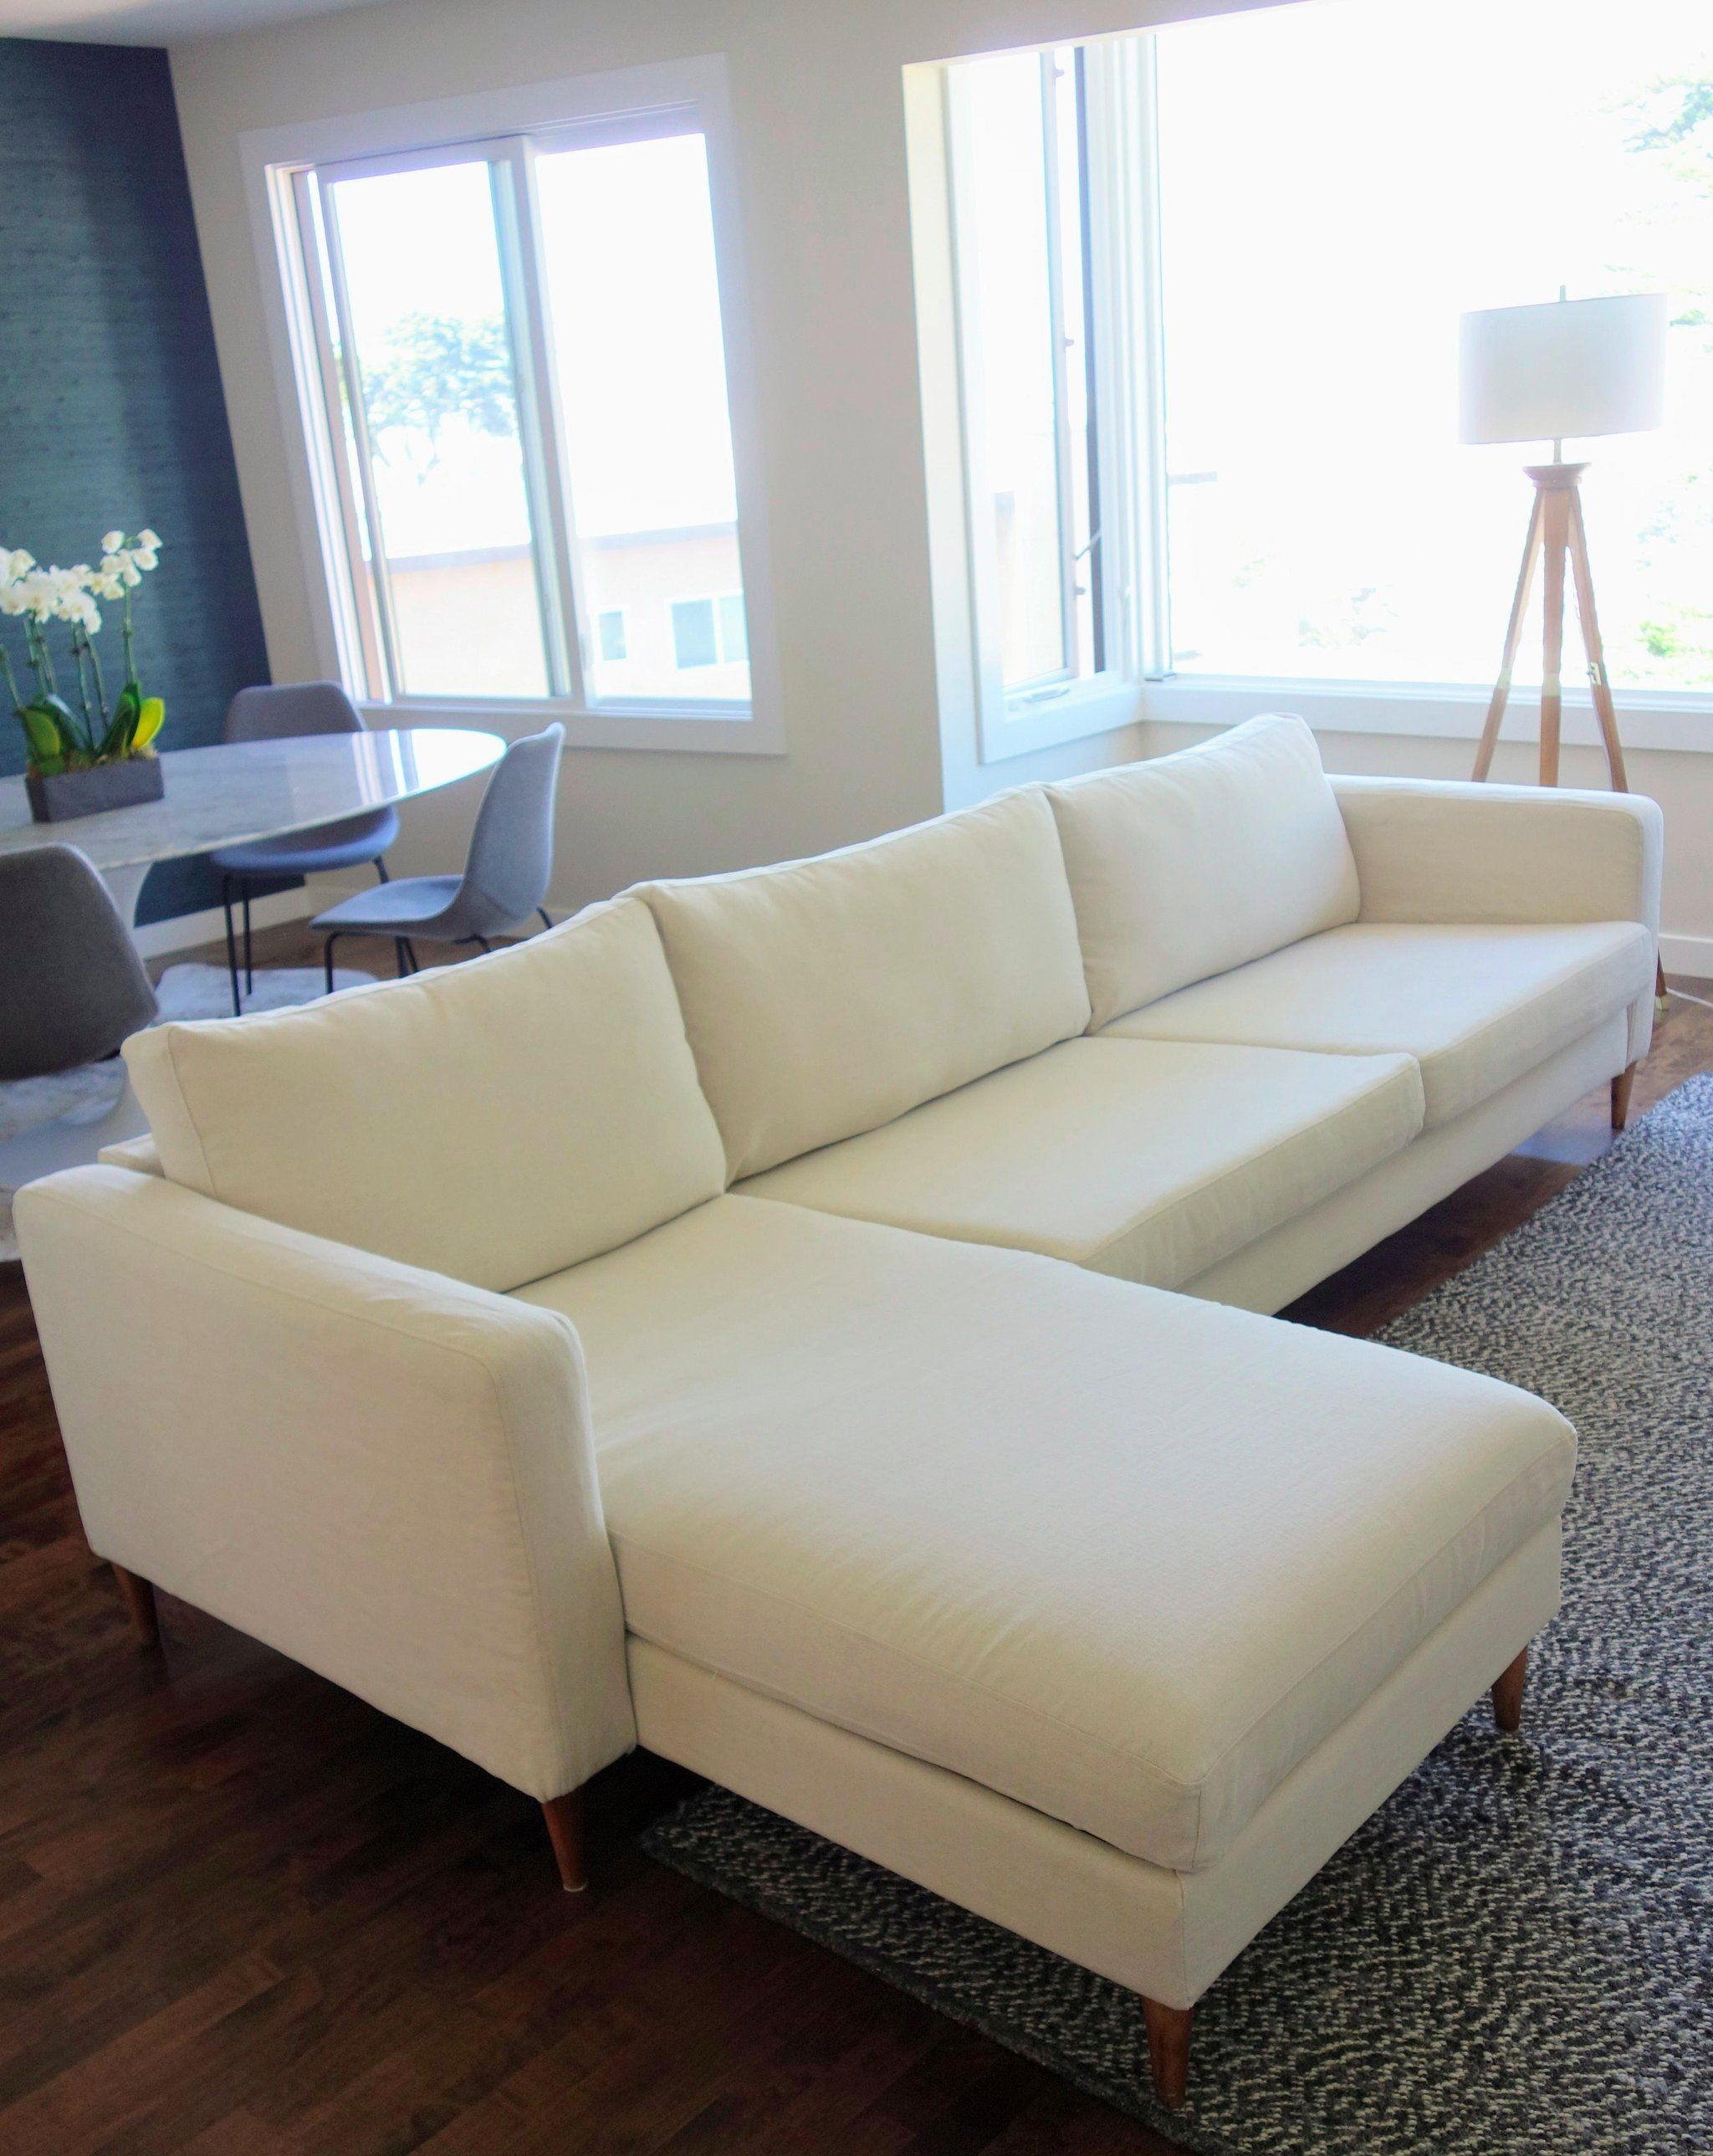 How I Turned My Ikea Couch Into An 11 000 Designer Sofa Ikea